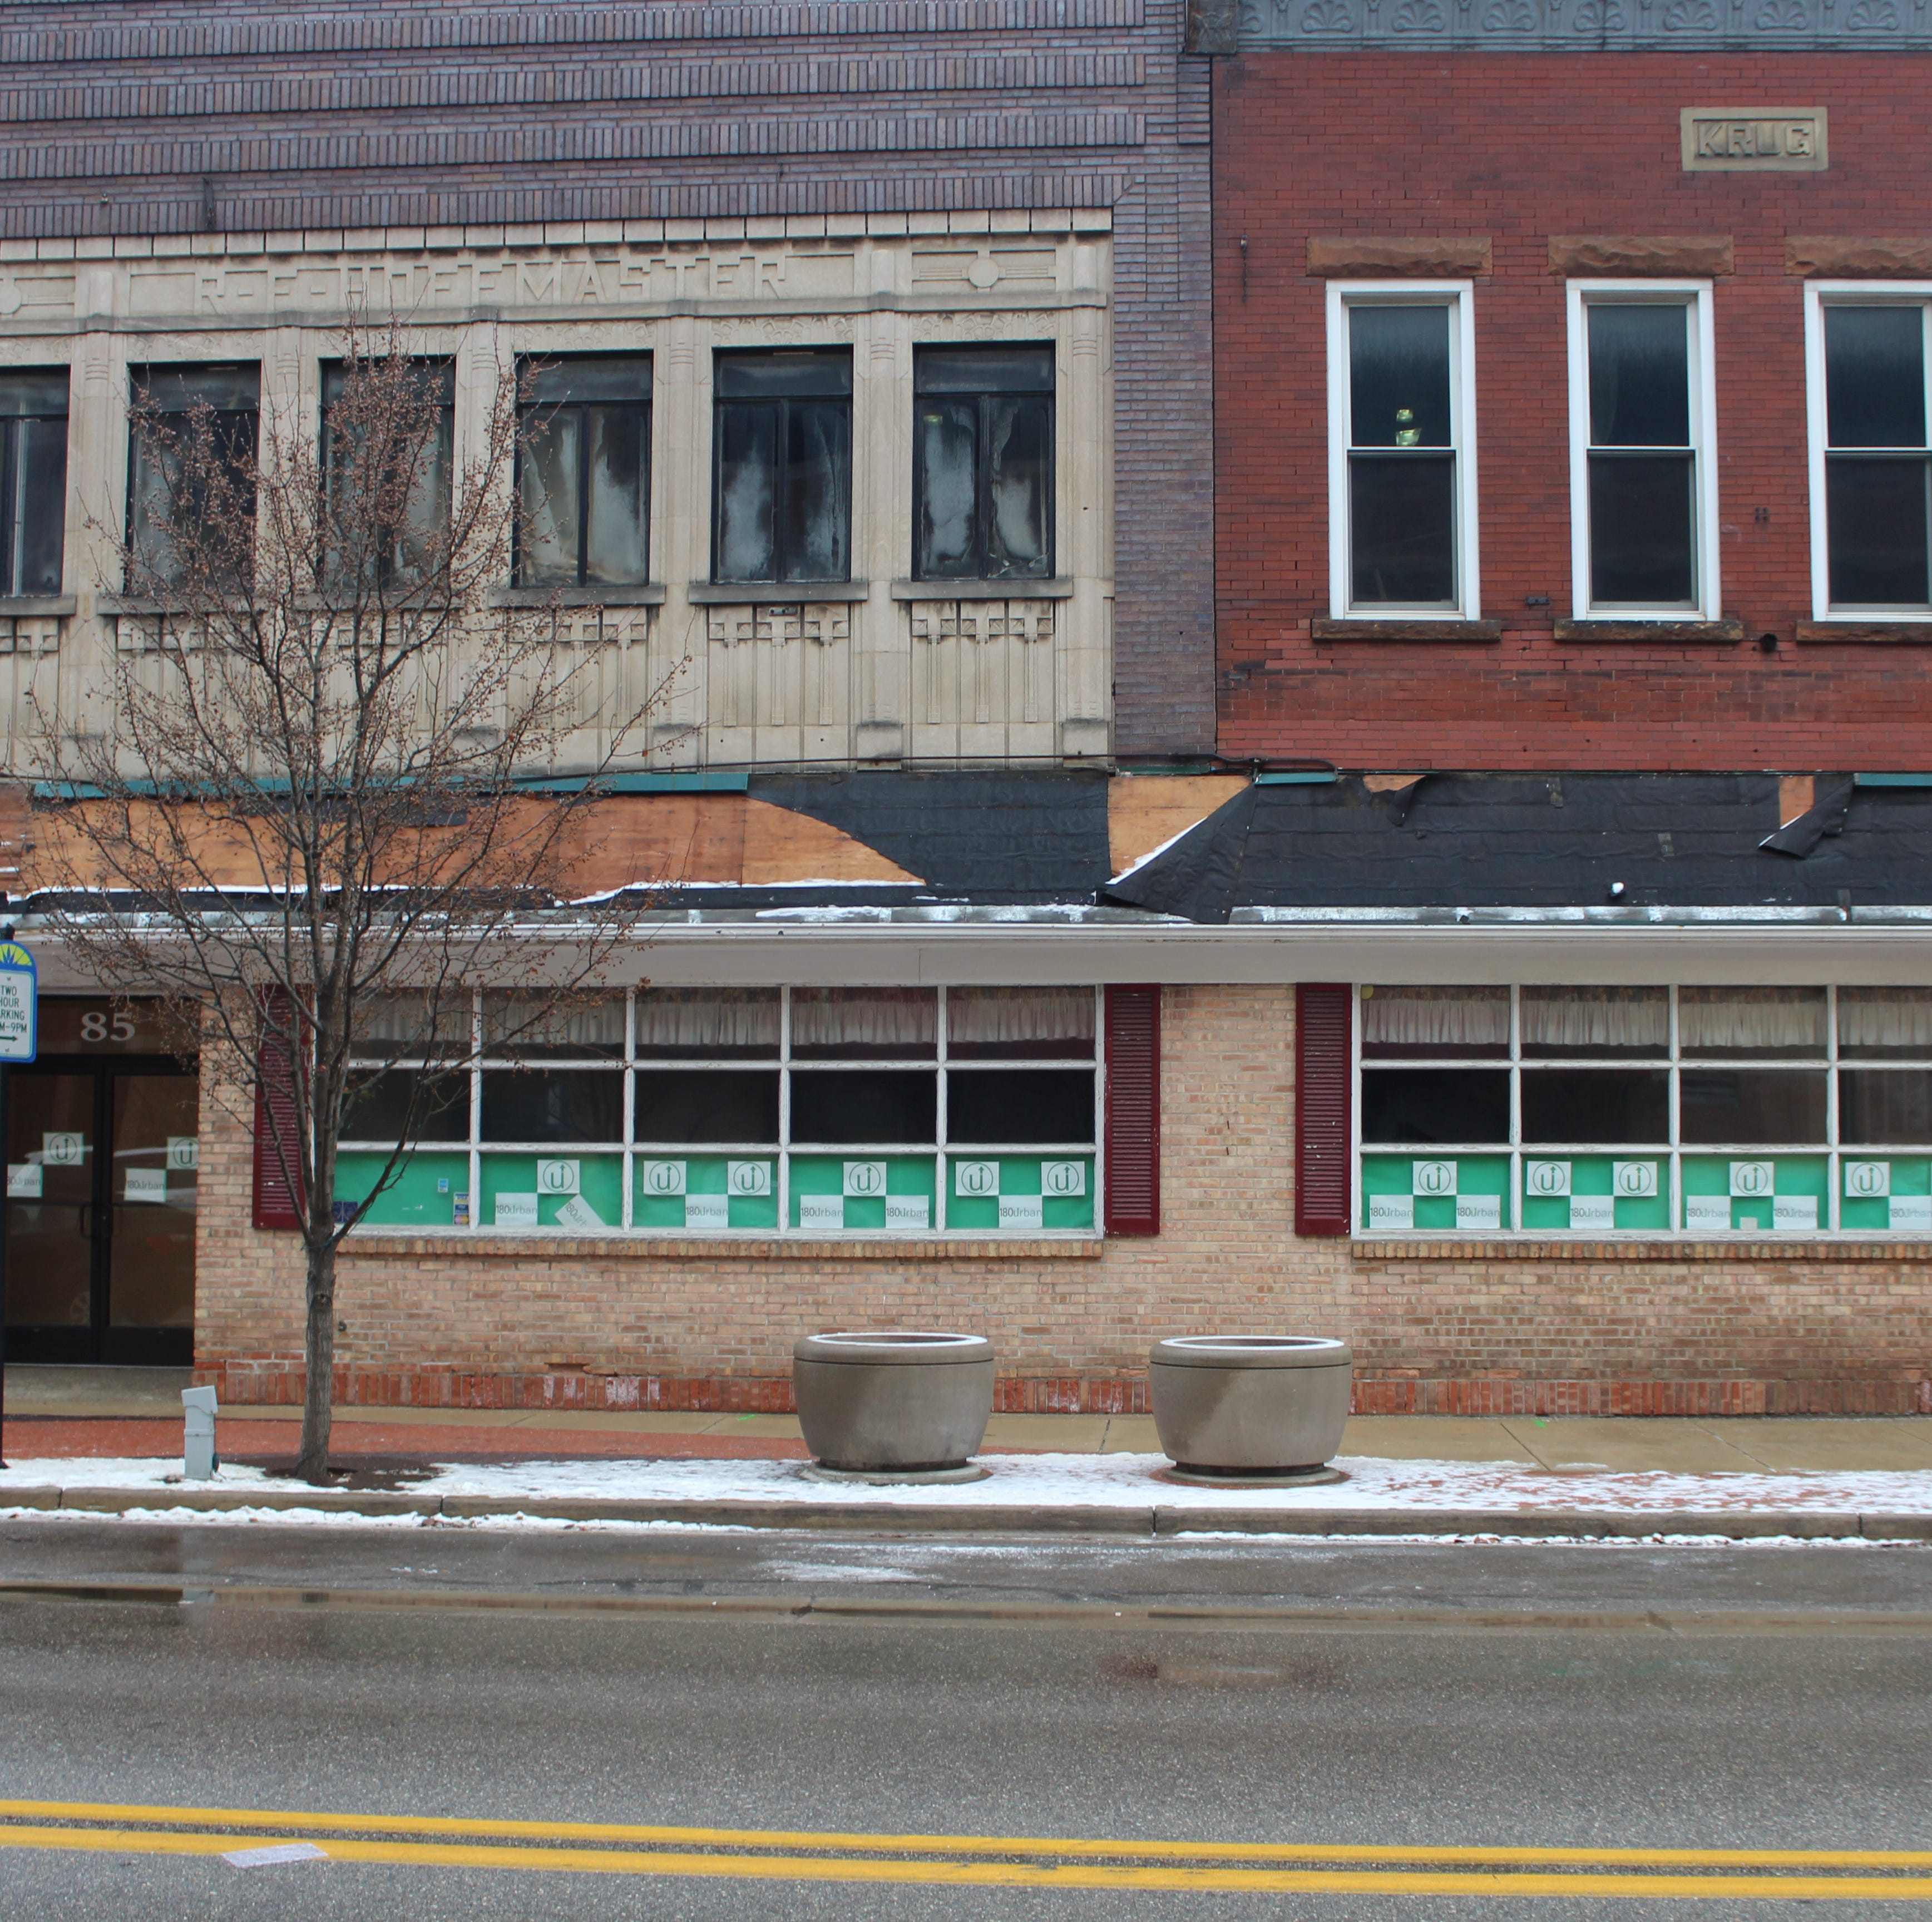 Affordable housing development could rise on site of former Shrank's building in downtown Battle Creek